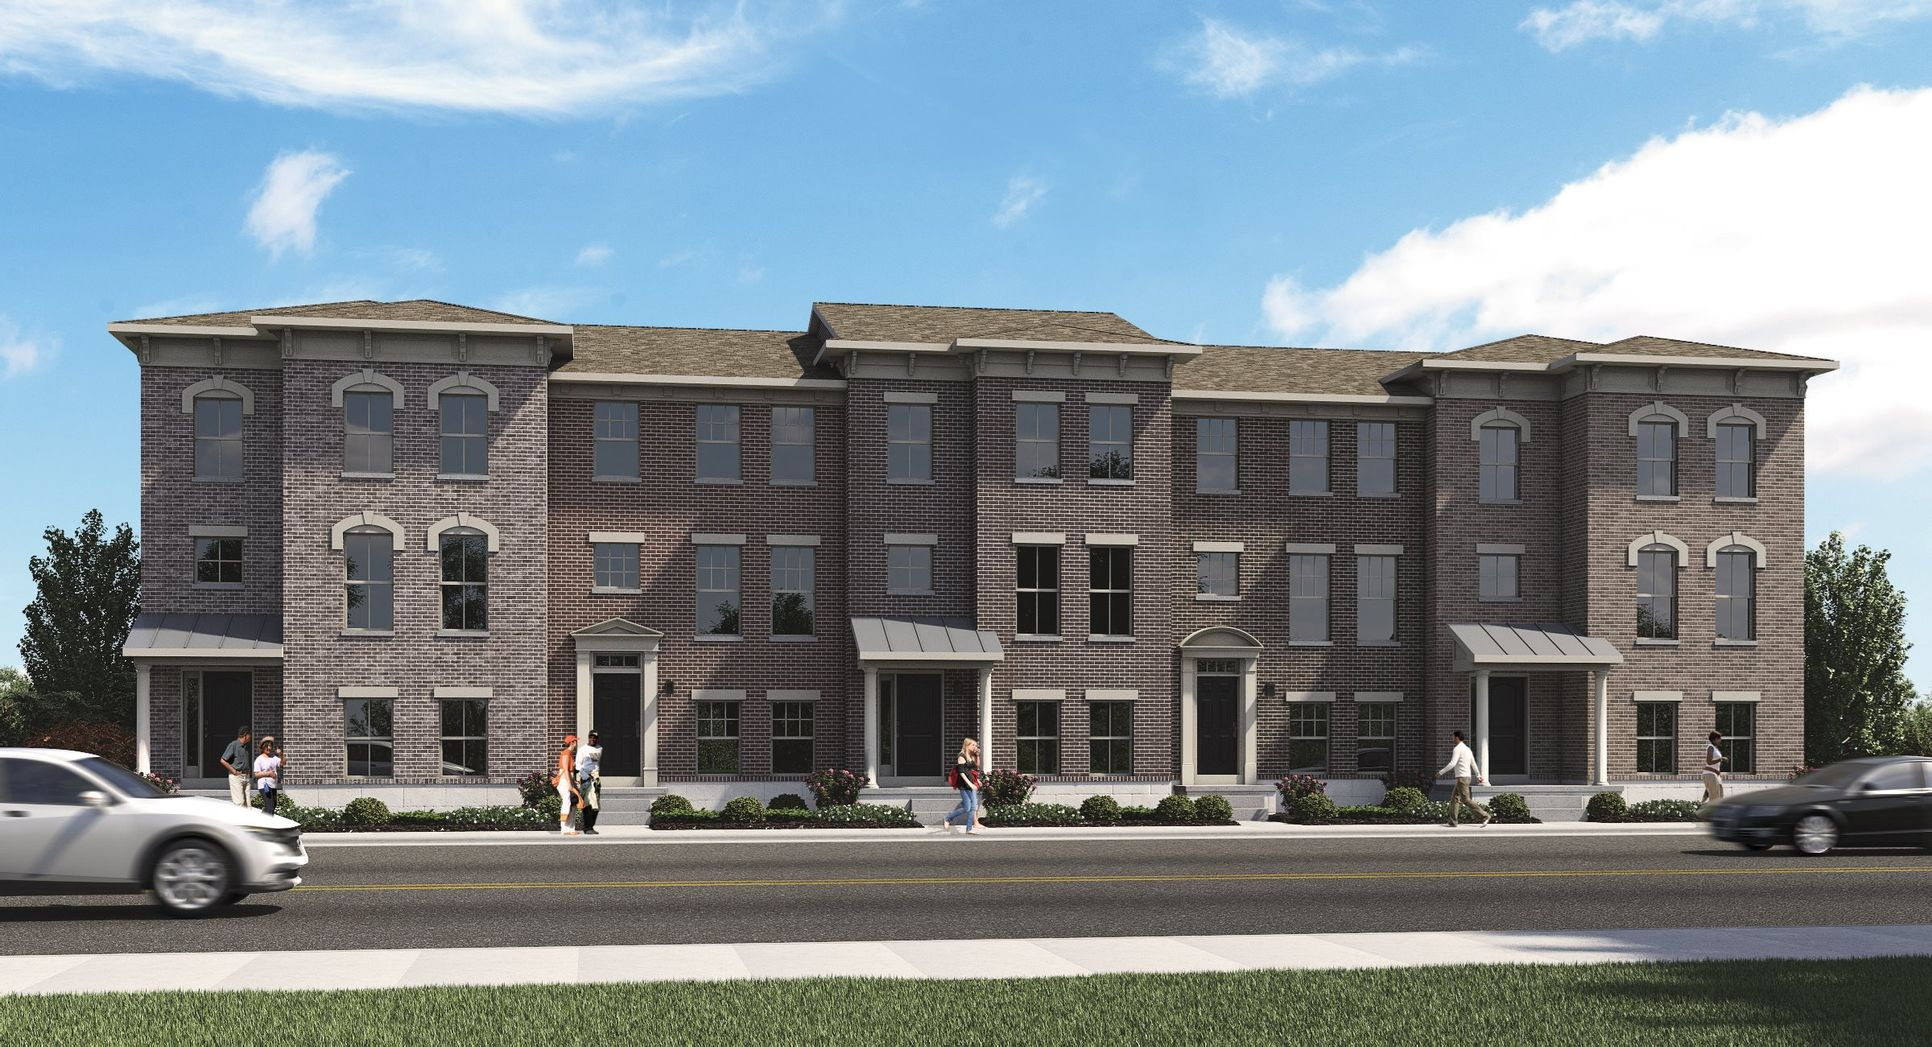 New Homes for sale in Zionsville, IN by Lennar